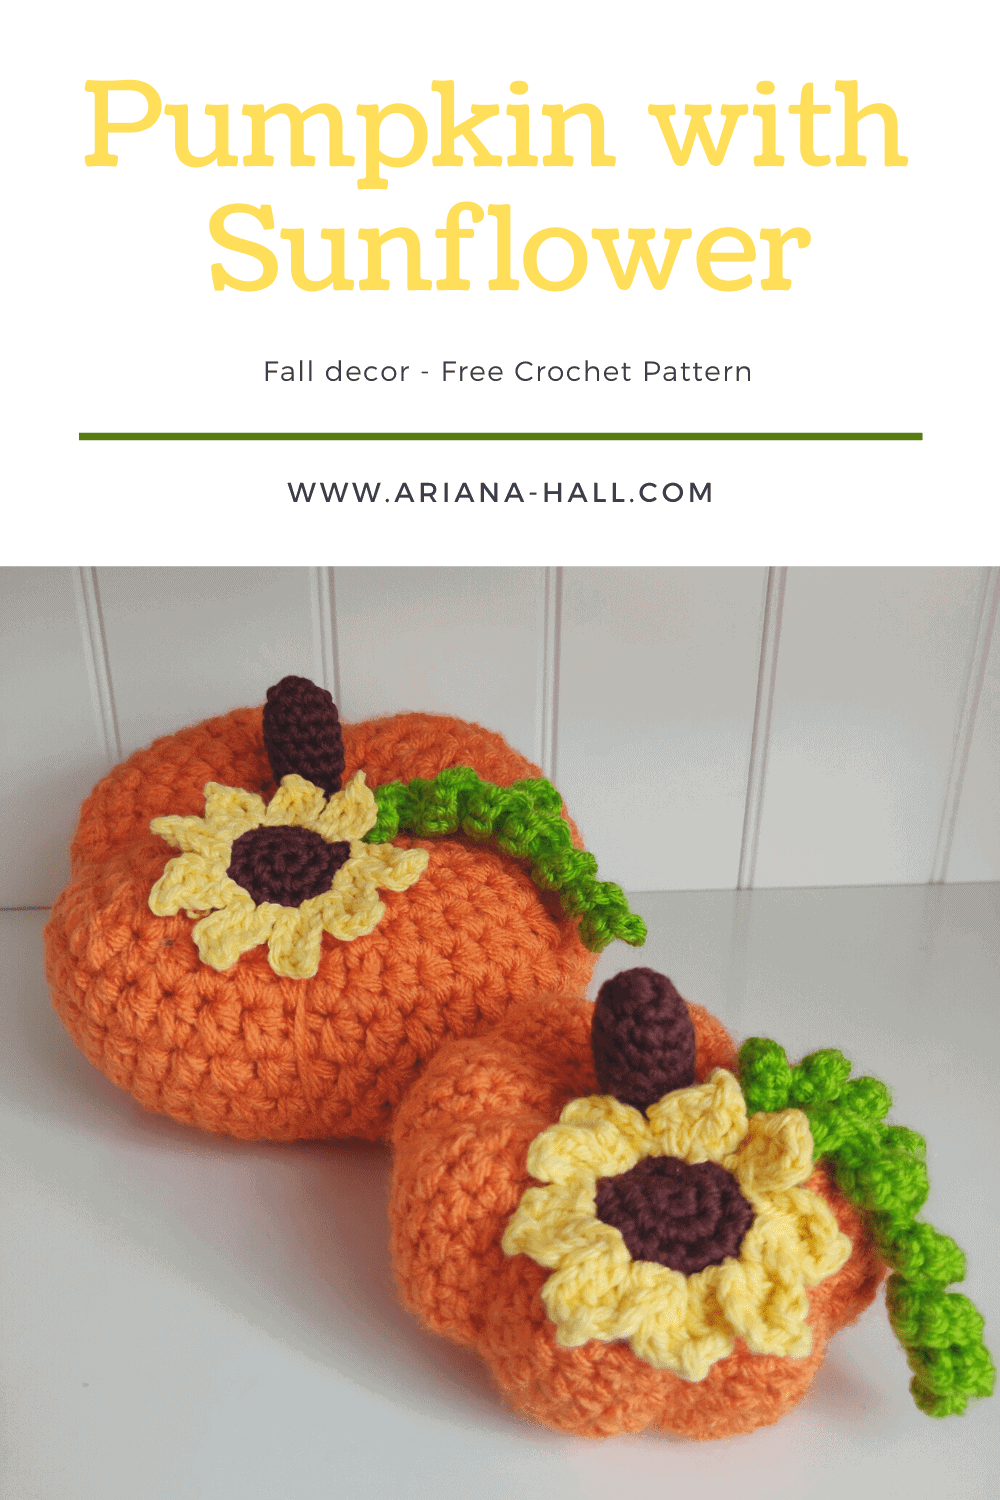 Crochet pumpkin with sunflower and vines